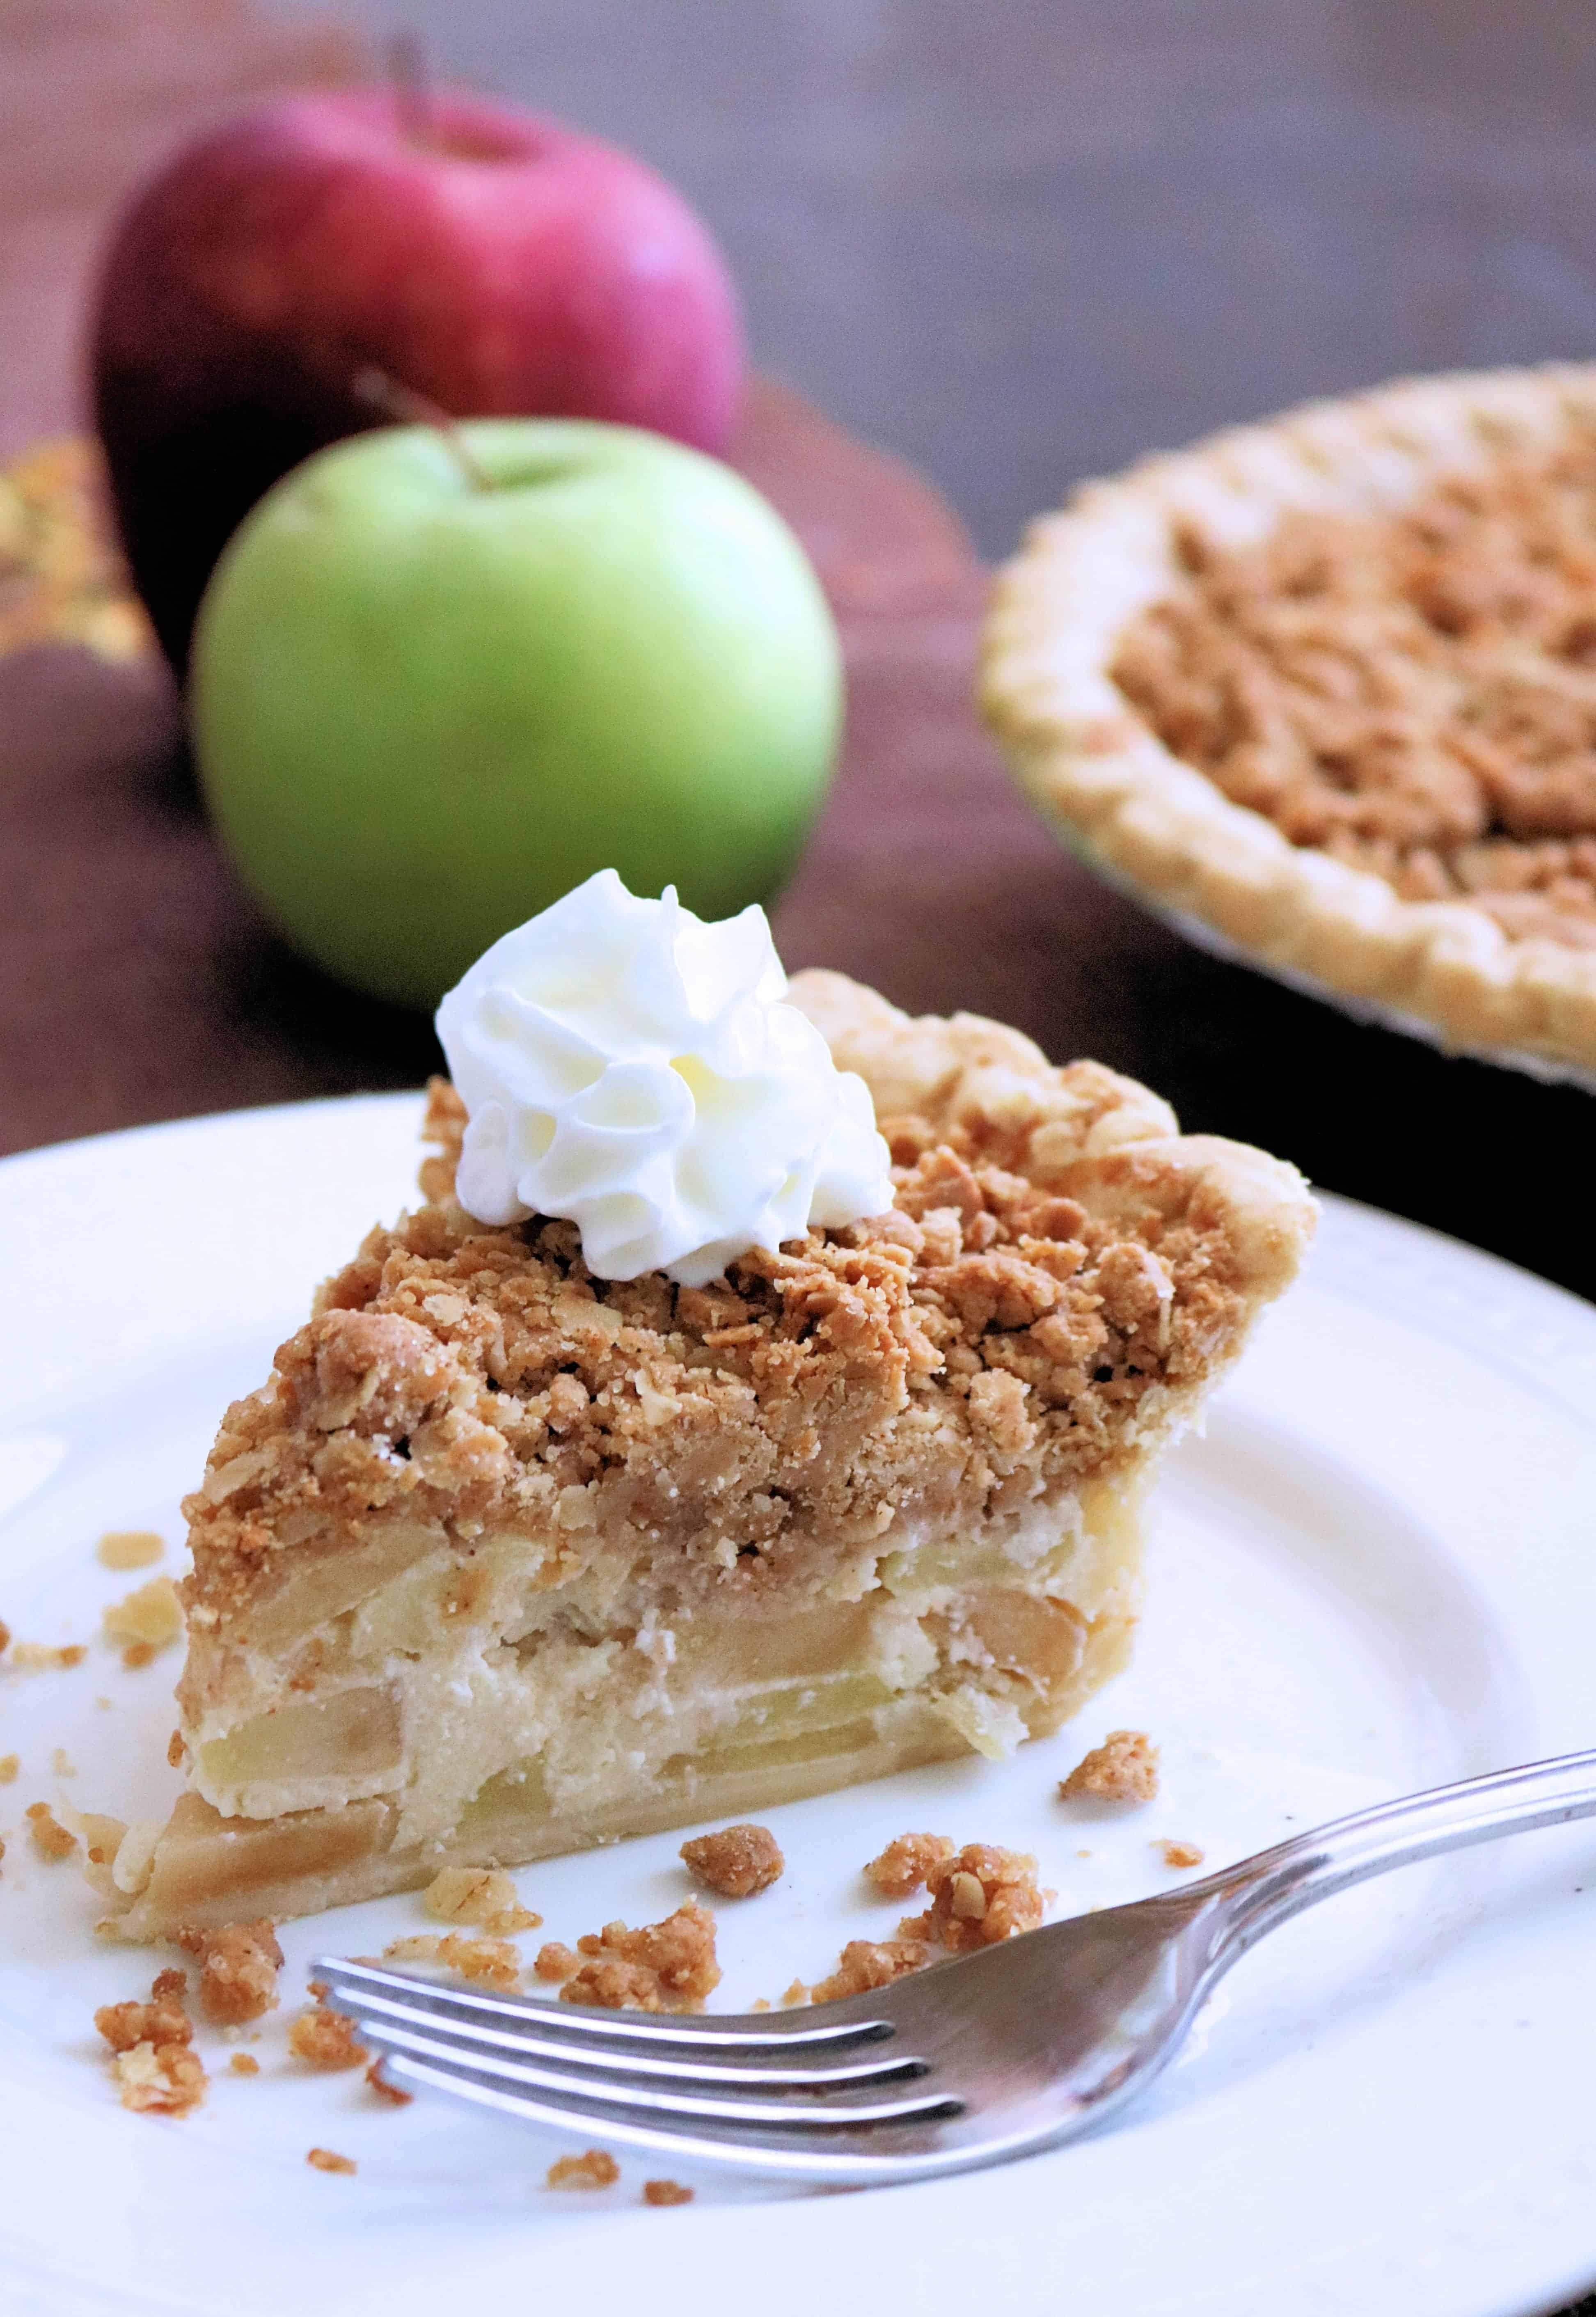 Peanut Butter Apple Crumb Pie - Love apple desserts? Get your fall baking on with these 15 delicious and easy apple dessert recipes including the best apple pies, cakes, apple crisp, and more! #applerecipes #appledesserts #baking #fallbaking